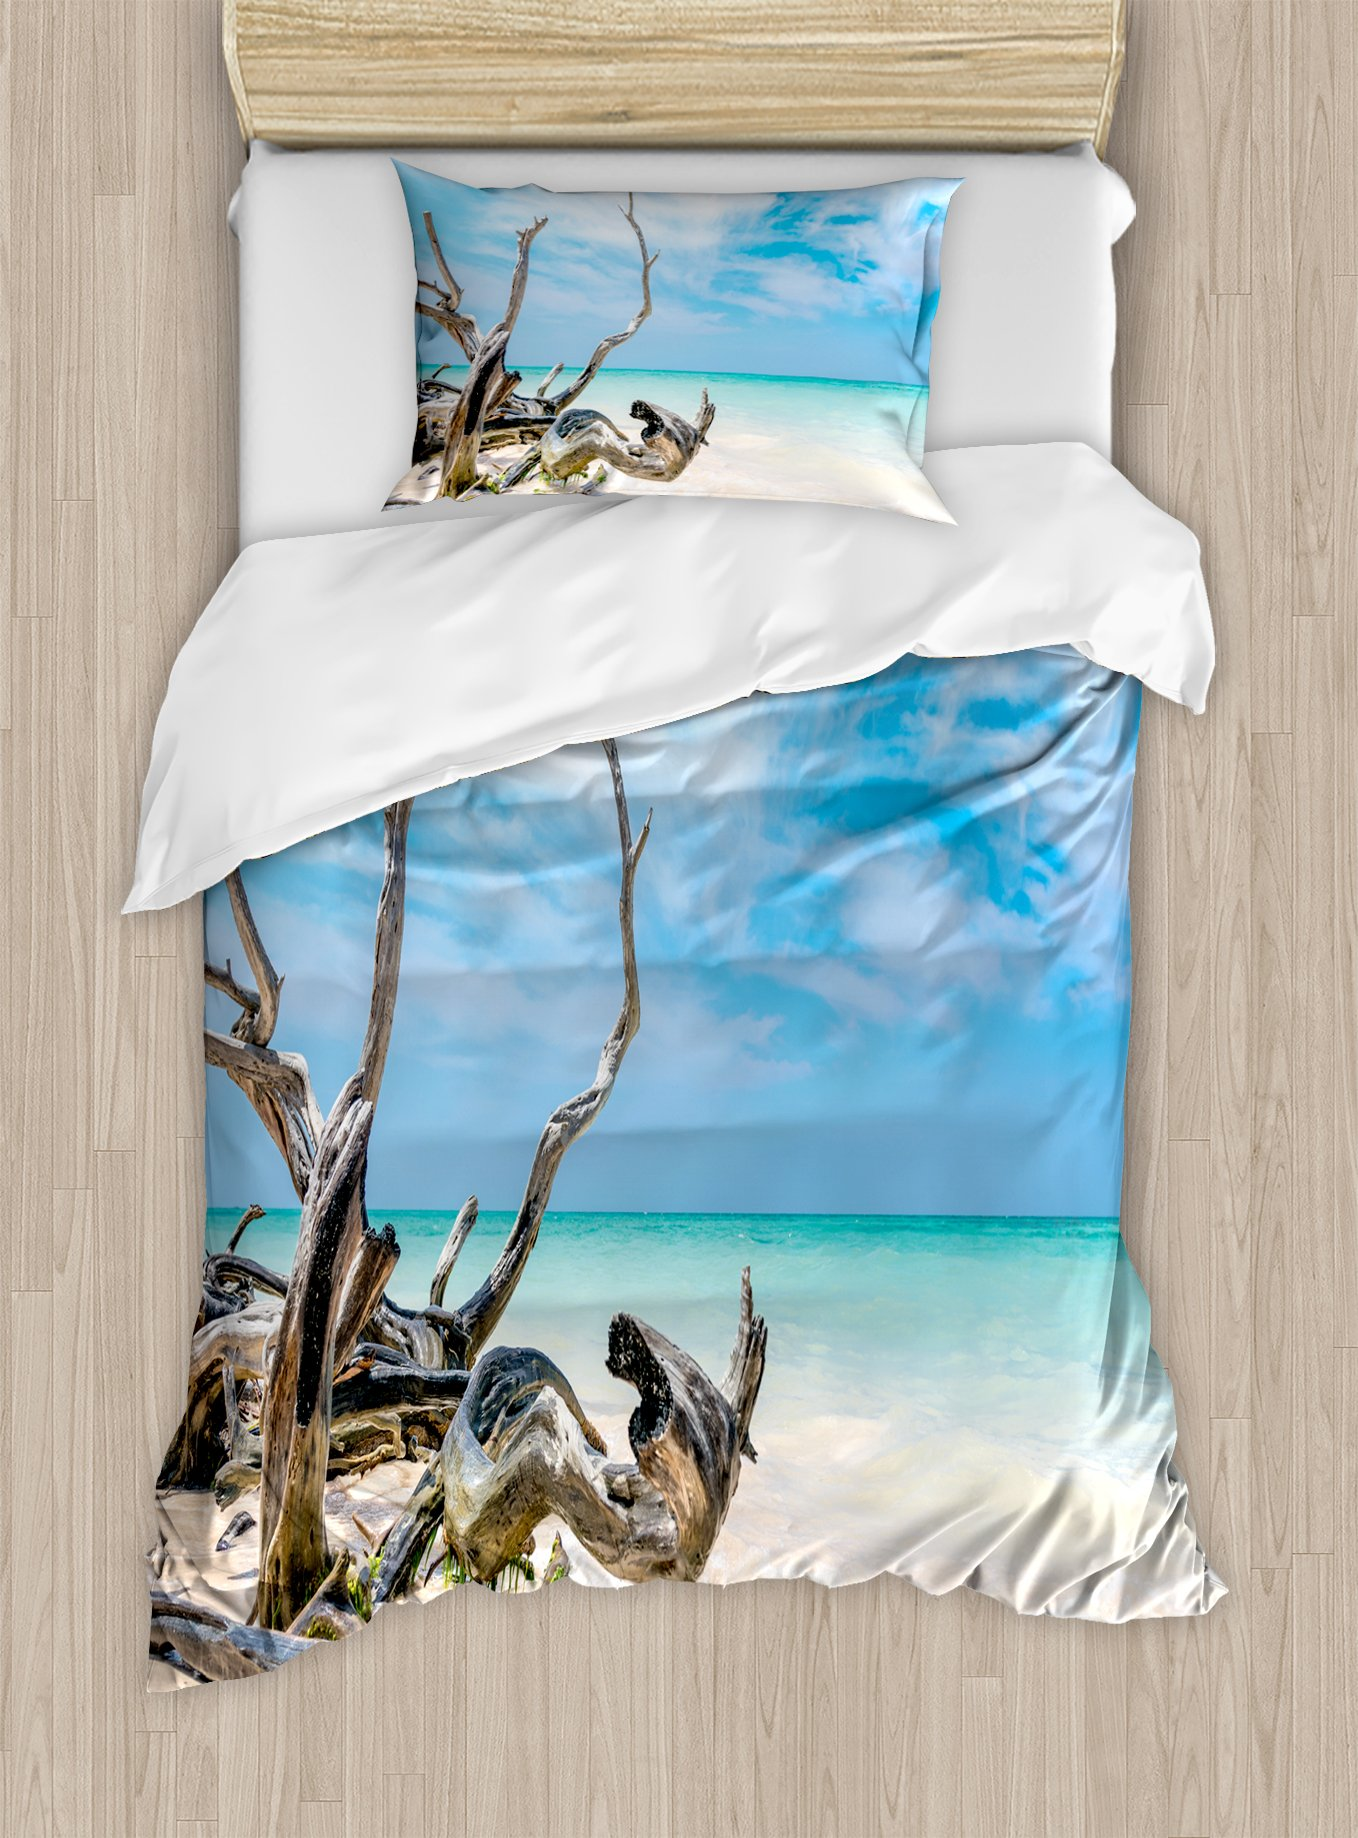 Ambesonne Driftwood Duvet Cover Set Twin Size, Seascape Theme Branches on The Sandy Beach of Cuba and The Sky Image, Decorative 2 Piece Bedding Set with 1 Pillow Sham, Turquoise Sky Blue by Ambesonne (Image #1)